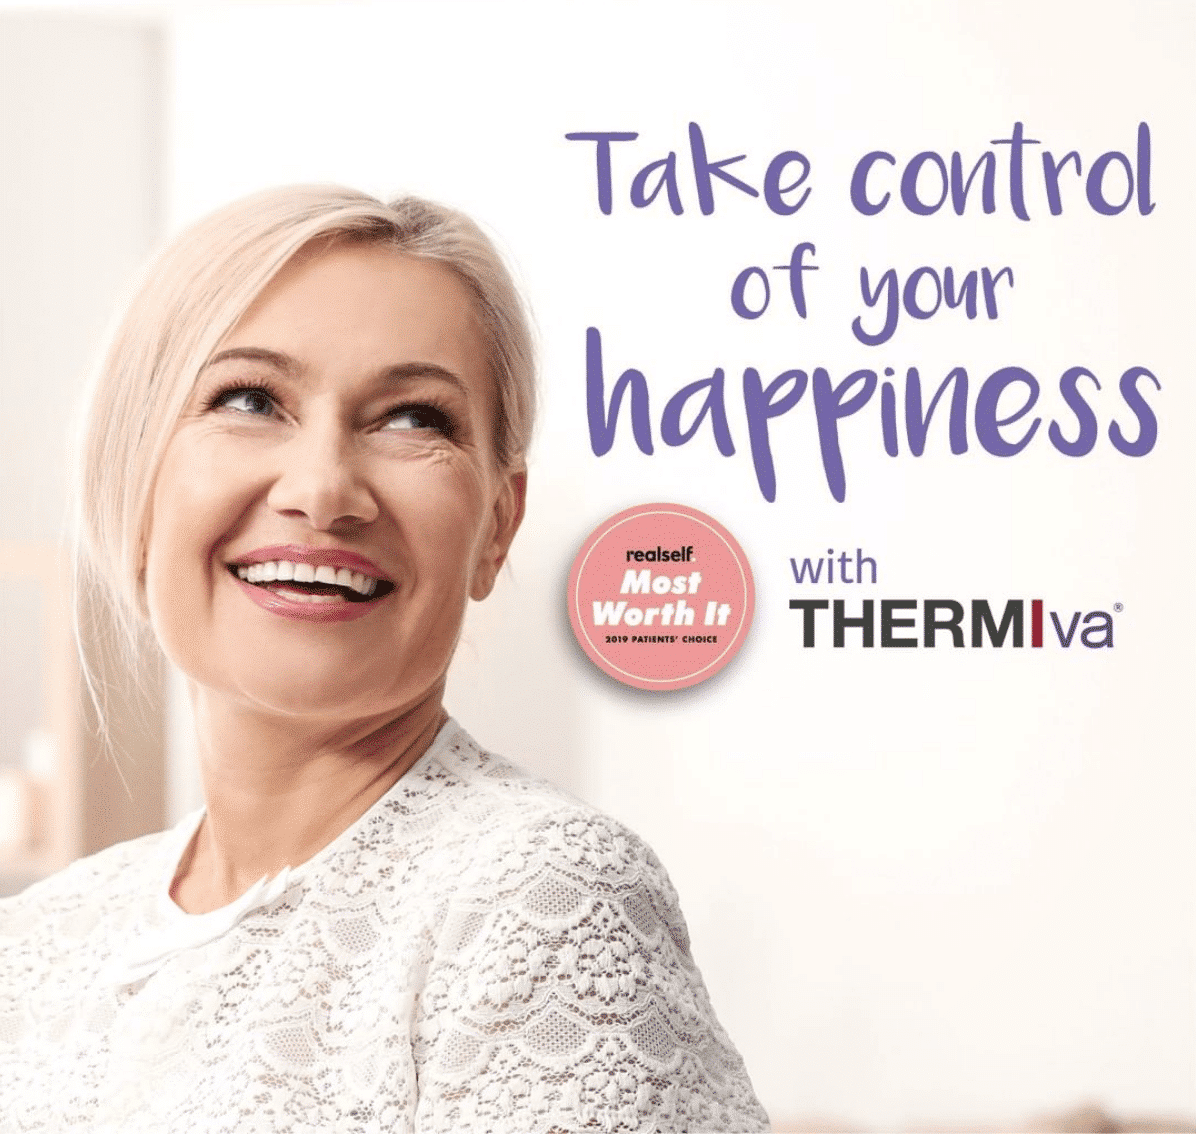 Take control of your happiness